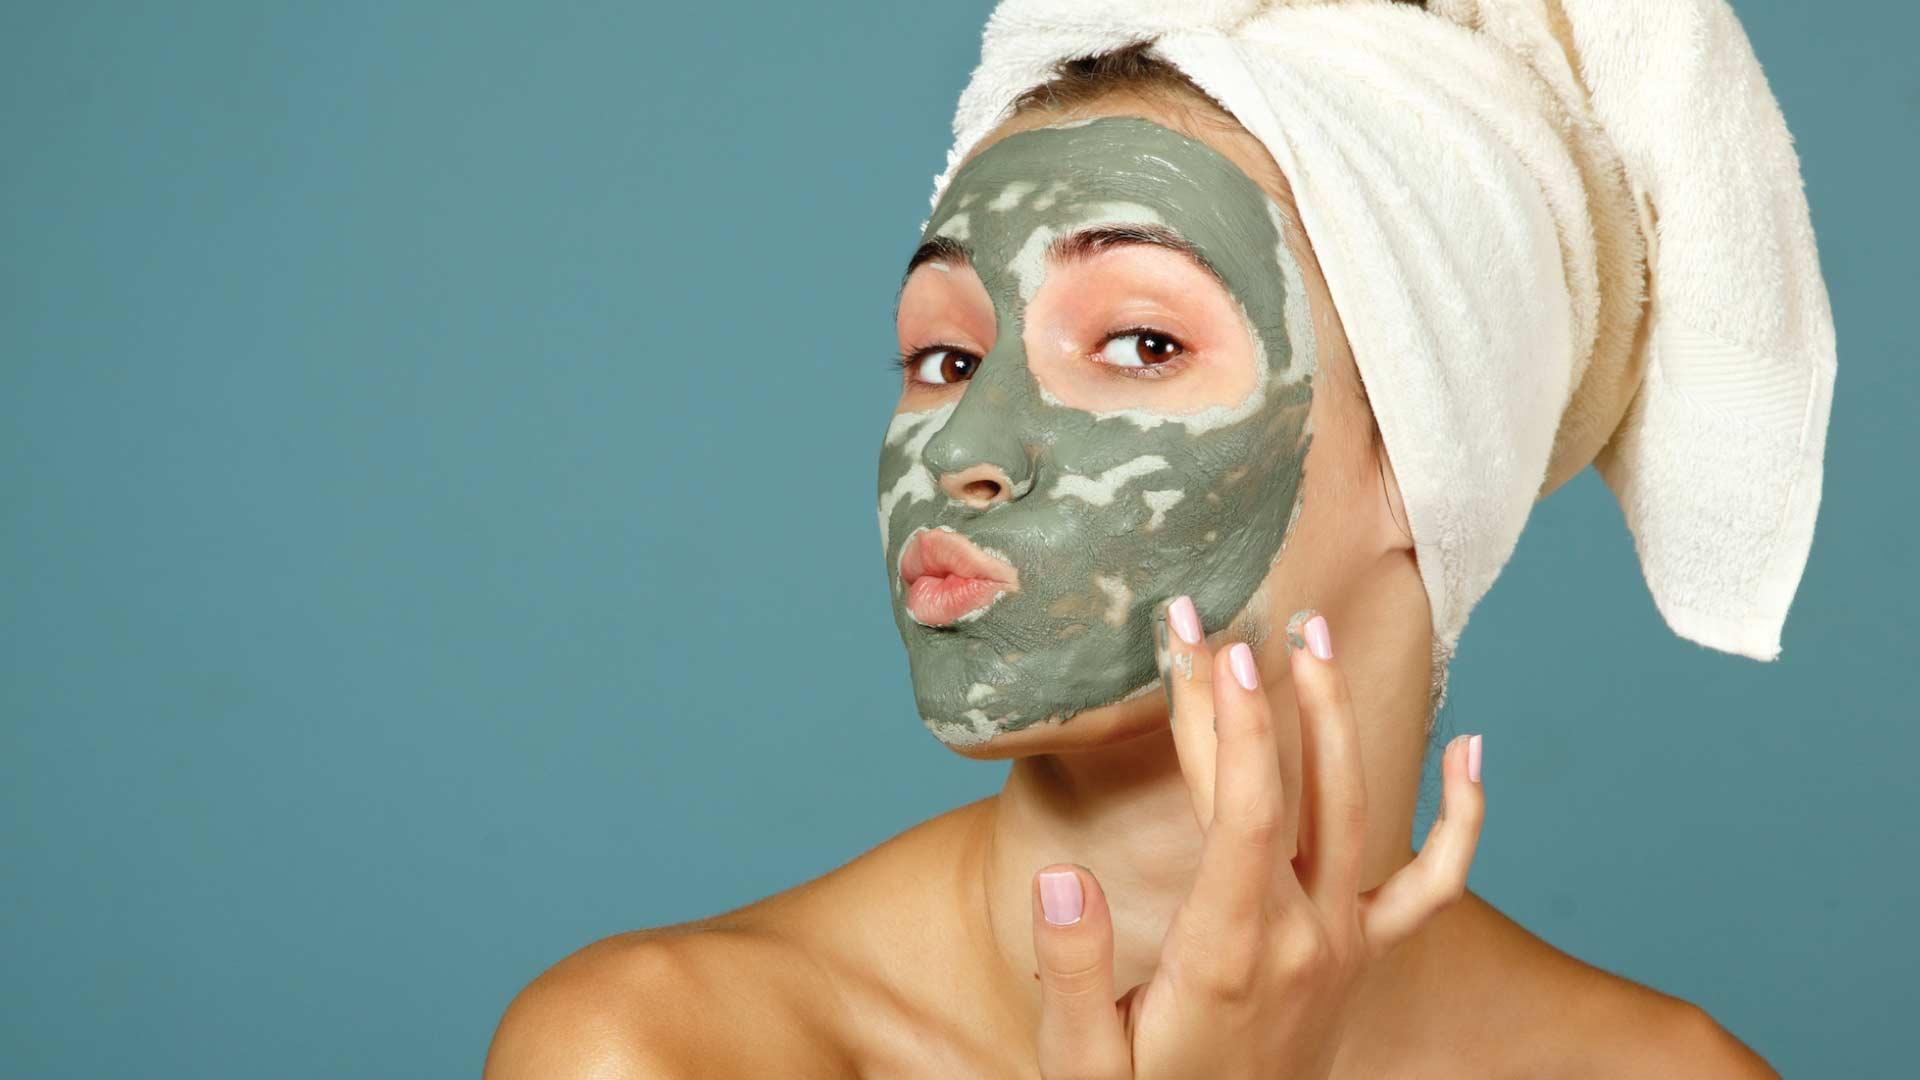 CBD topicals can help with acne